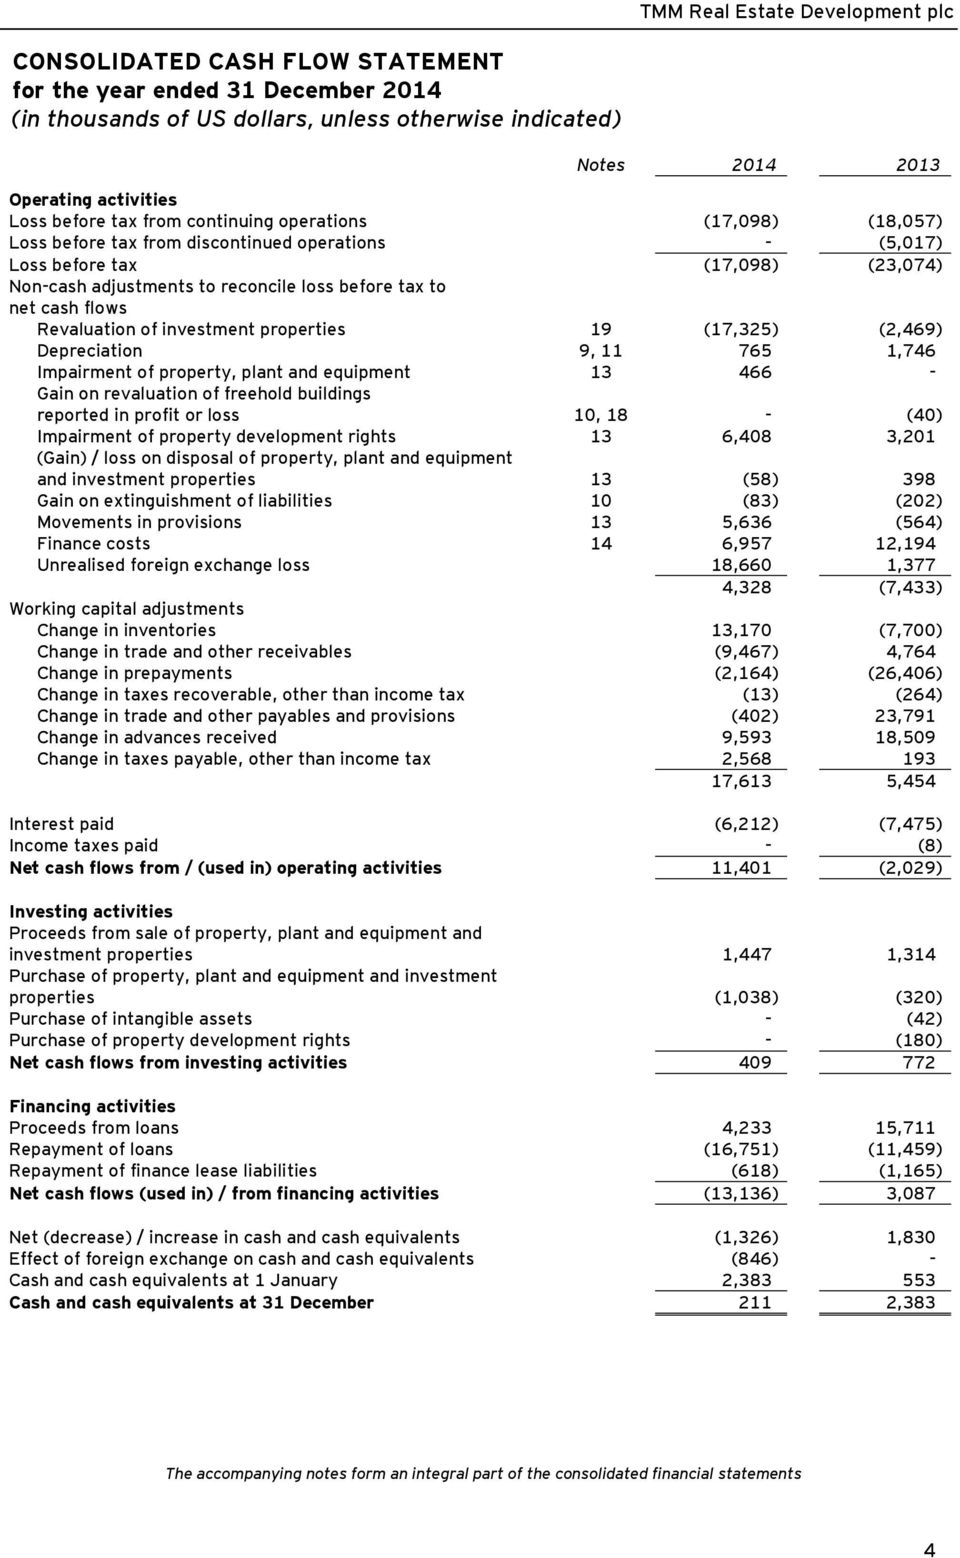 plant and equipment 13 466 - Gain on revaluation of freehold buildings reported in profit or loss 10, 18 - (40) Impairment of property development rights 13 6,408 3,201 (Gain) / loss on disposal of